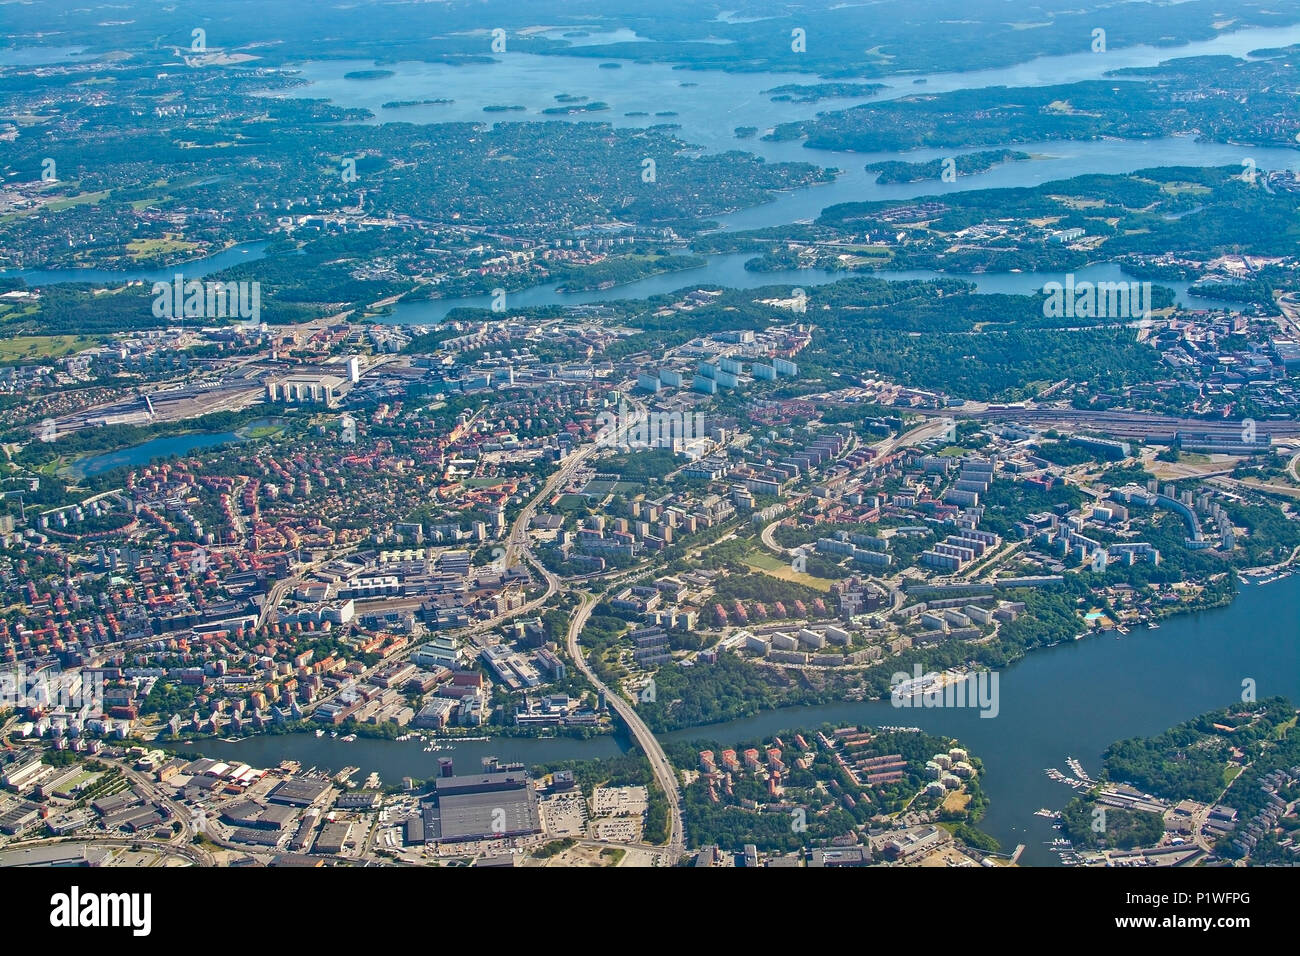 STOCKHOLM, SWEDEN - JUNE 1, 2018: Aerial shot over Solna and Friend's Arena during inflight to Arlanda airport on a sunny day on June 1, 20108 in Stoc Stock Photo